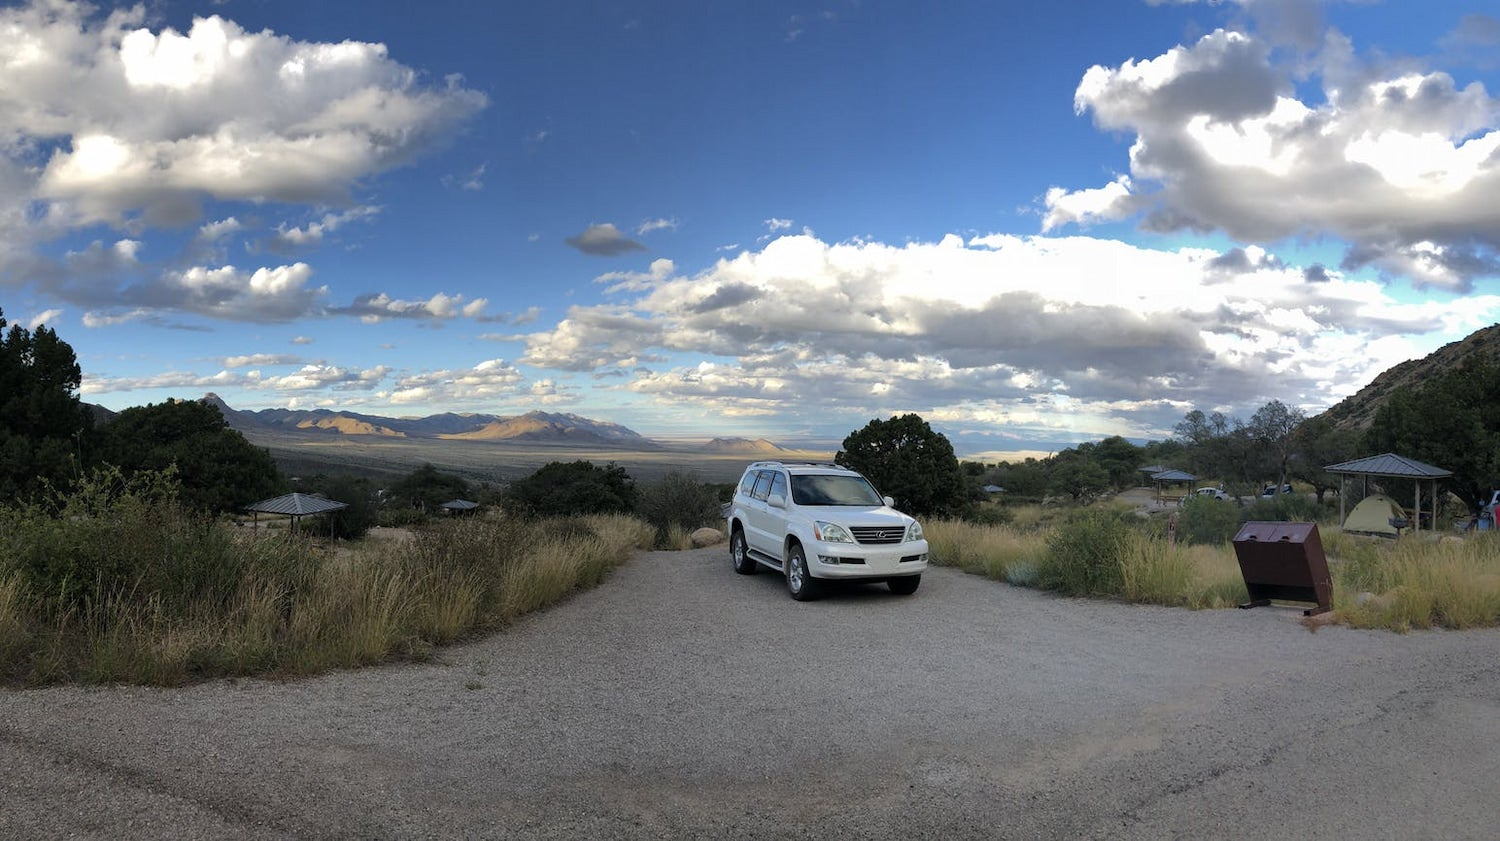 car parked at campground with beautiful vista in the background